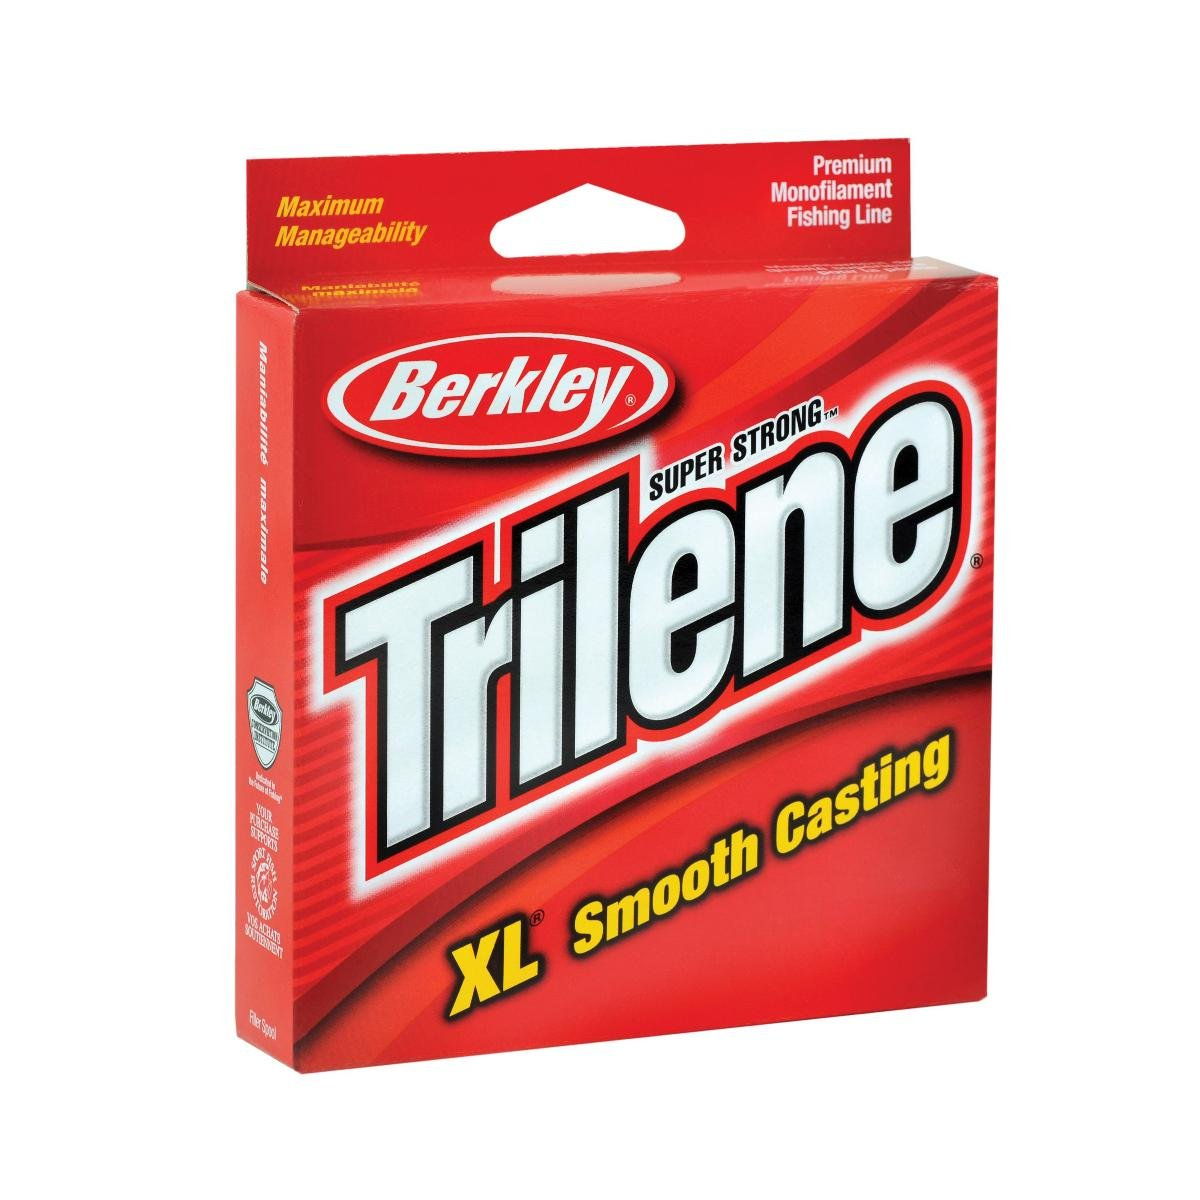 Amazon.com : Berkley Trilene XL Smooth Casting Monofilament Service ...